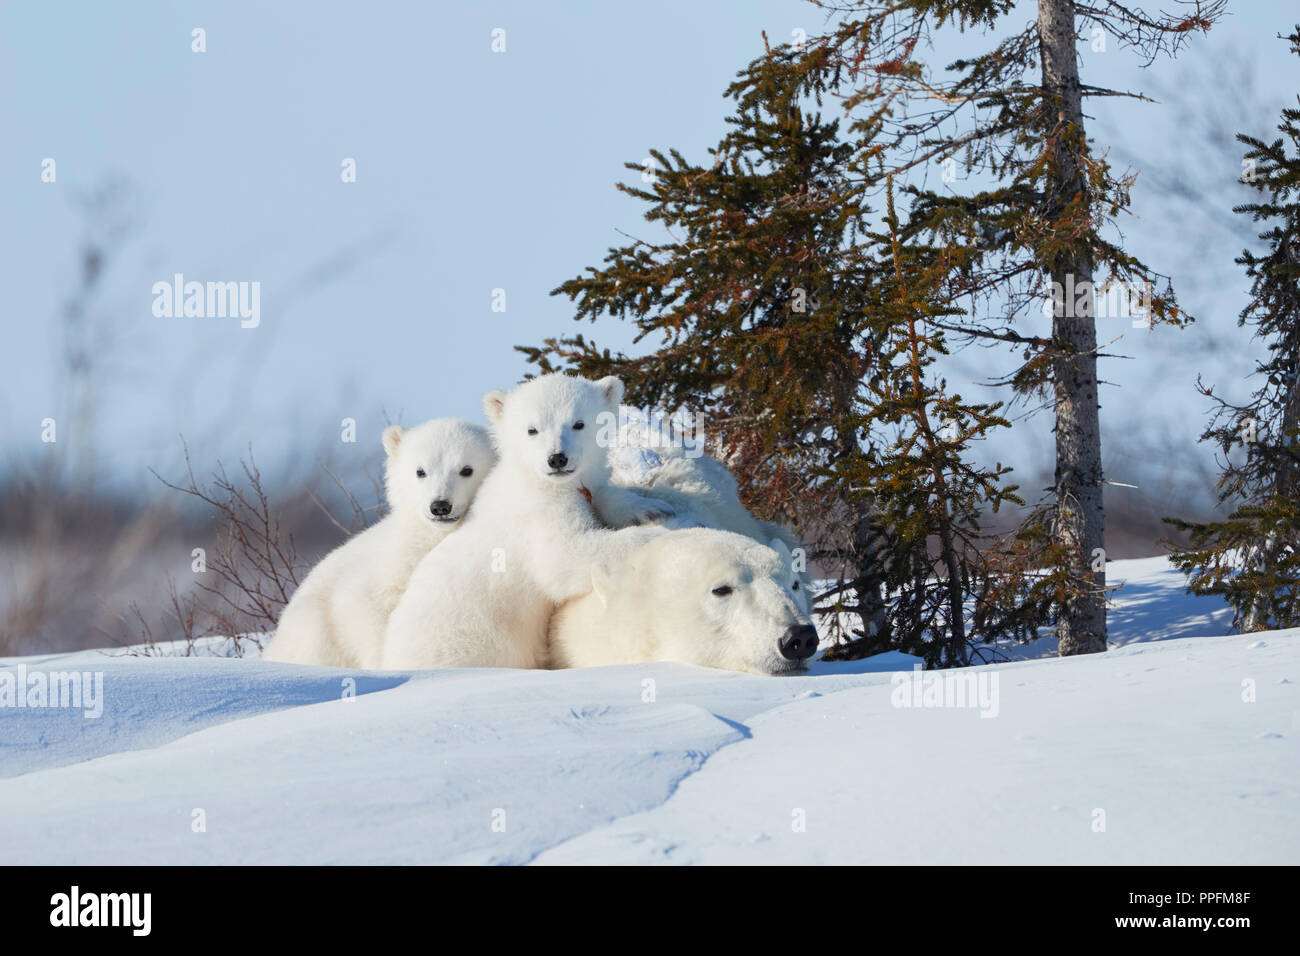 Polar bears (Ursus maritimus), mother animal with two newborns lying in the snow, Wapusk National Park, Manitoba, Canada - Stock Image